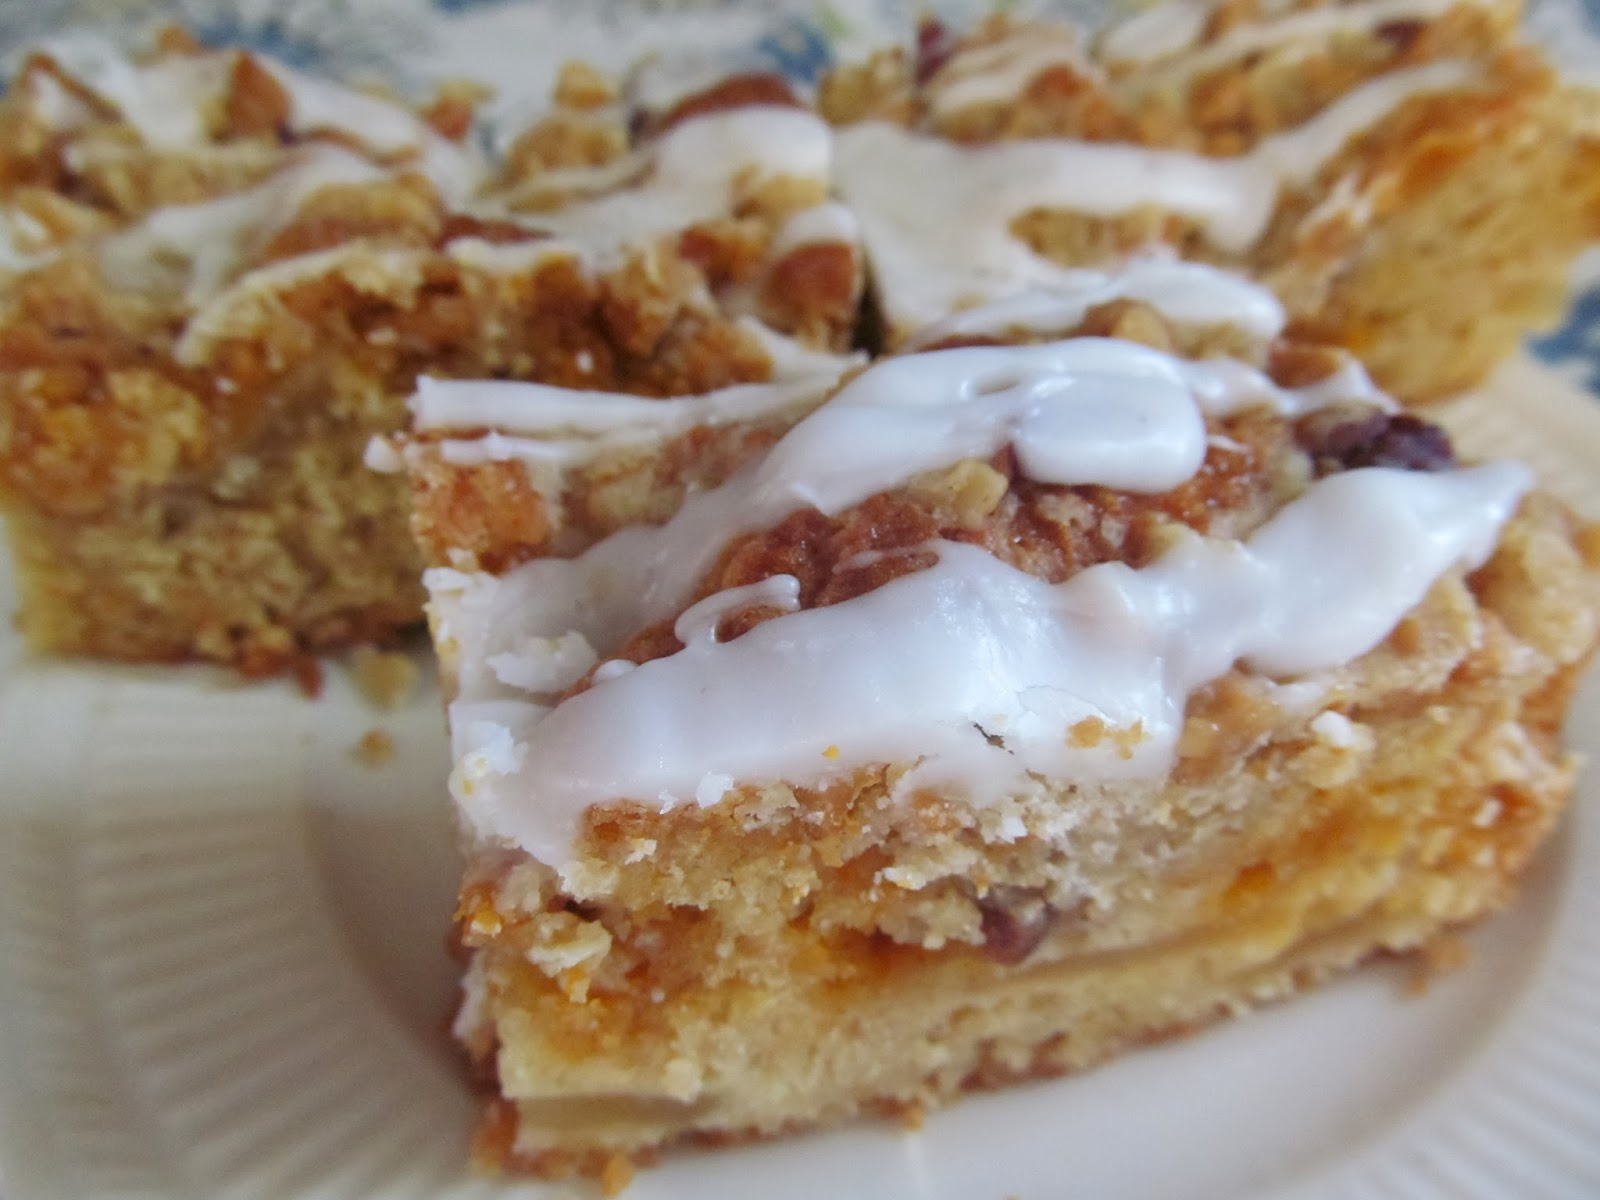 Home Joys: Flo's Cakes - Apple Coffee Cake